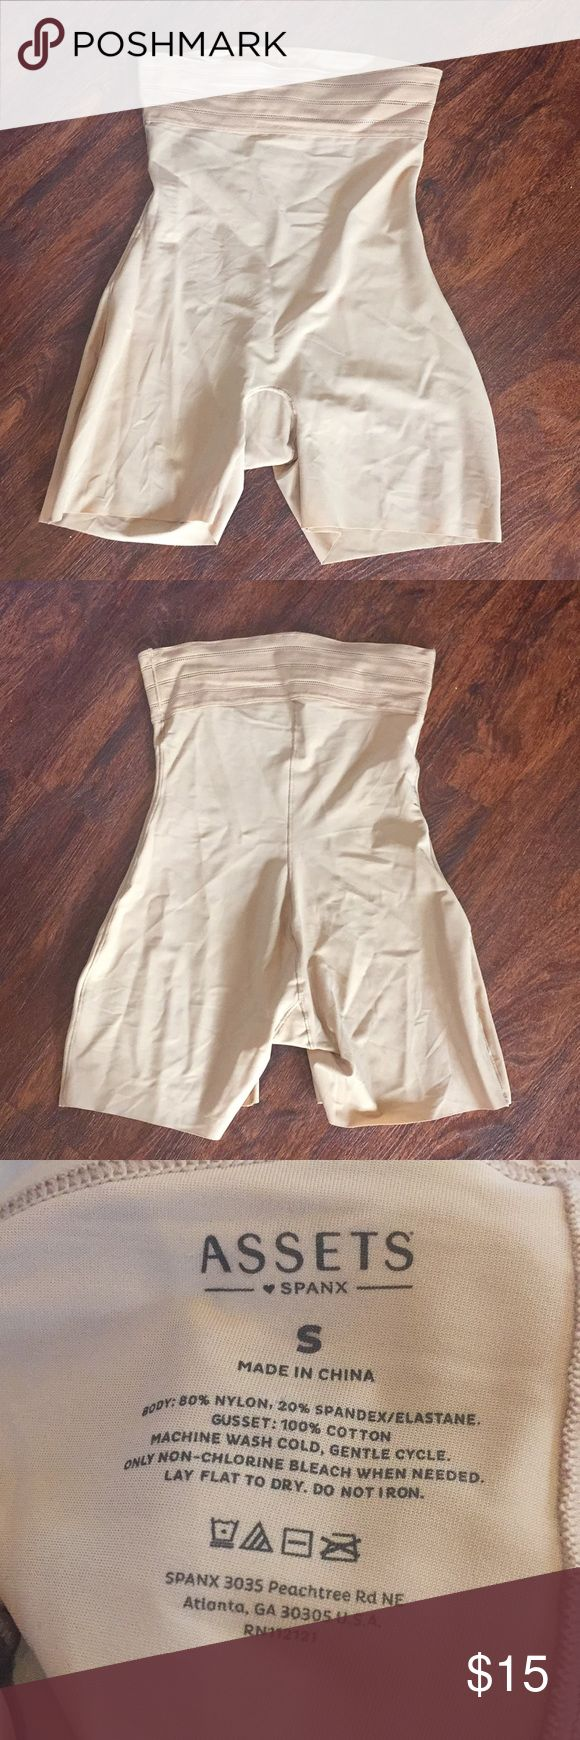 NWOT Assets by Spanx Shapewear New without tags Assets By Spanx Intimates & Sleepwear Shapewear